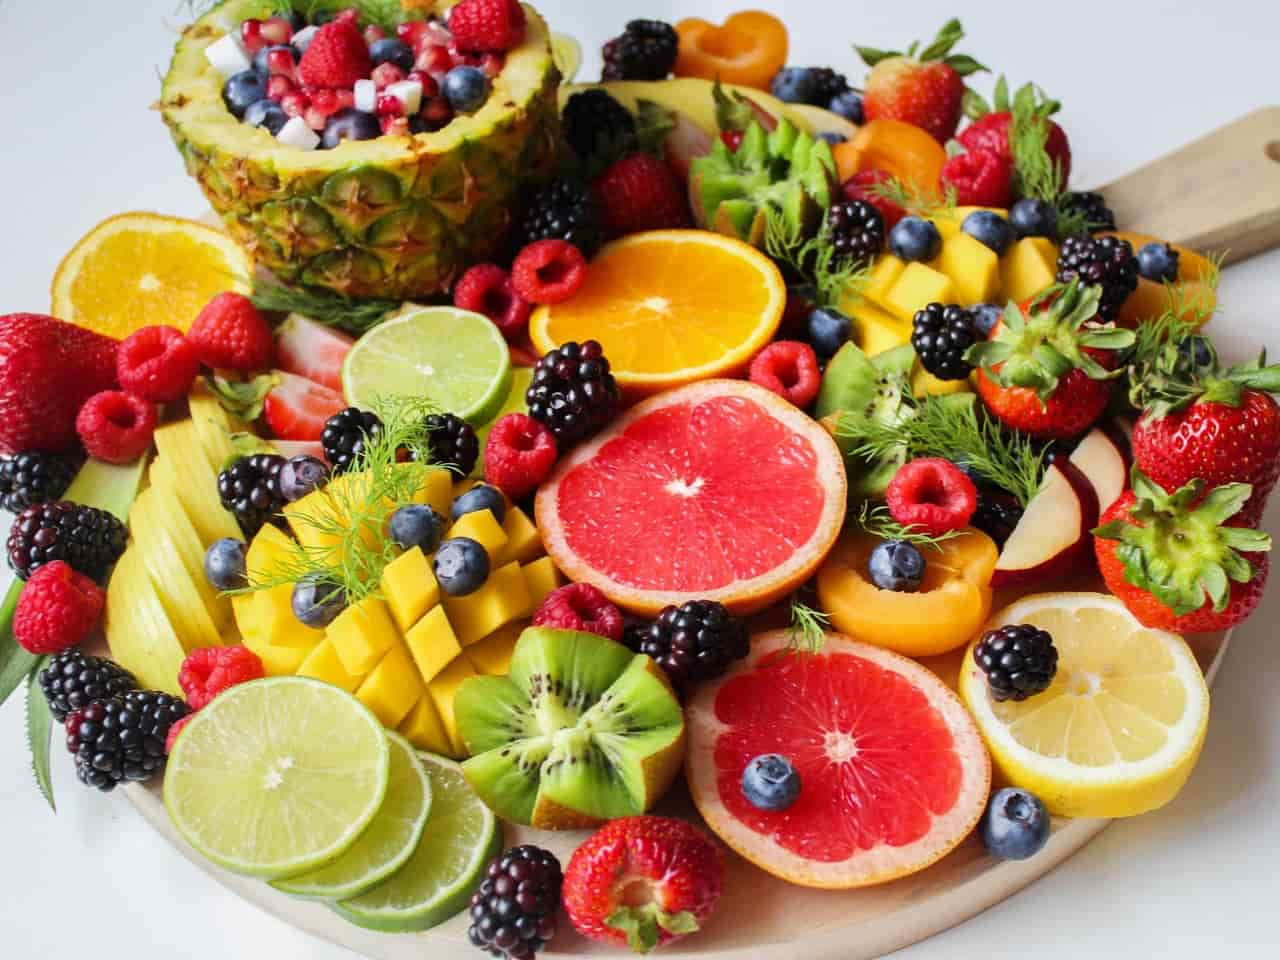 Fruits - hiatal hernia diet